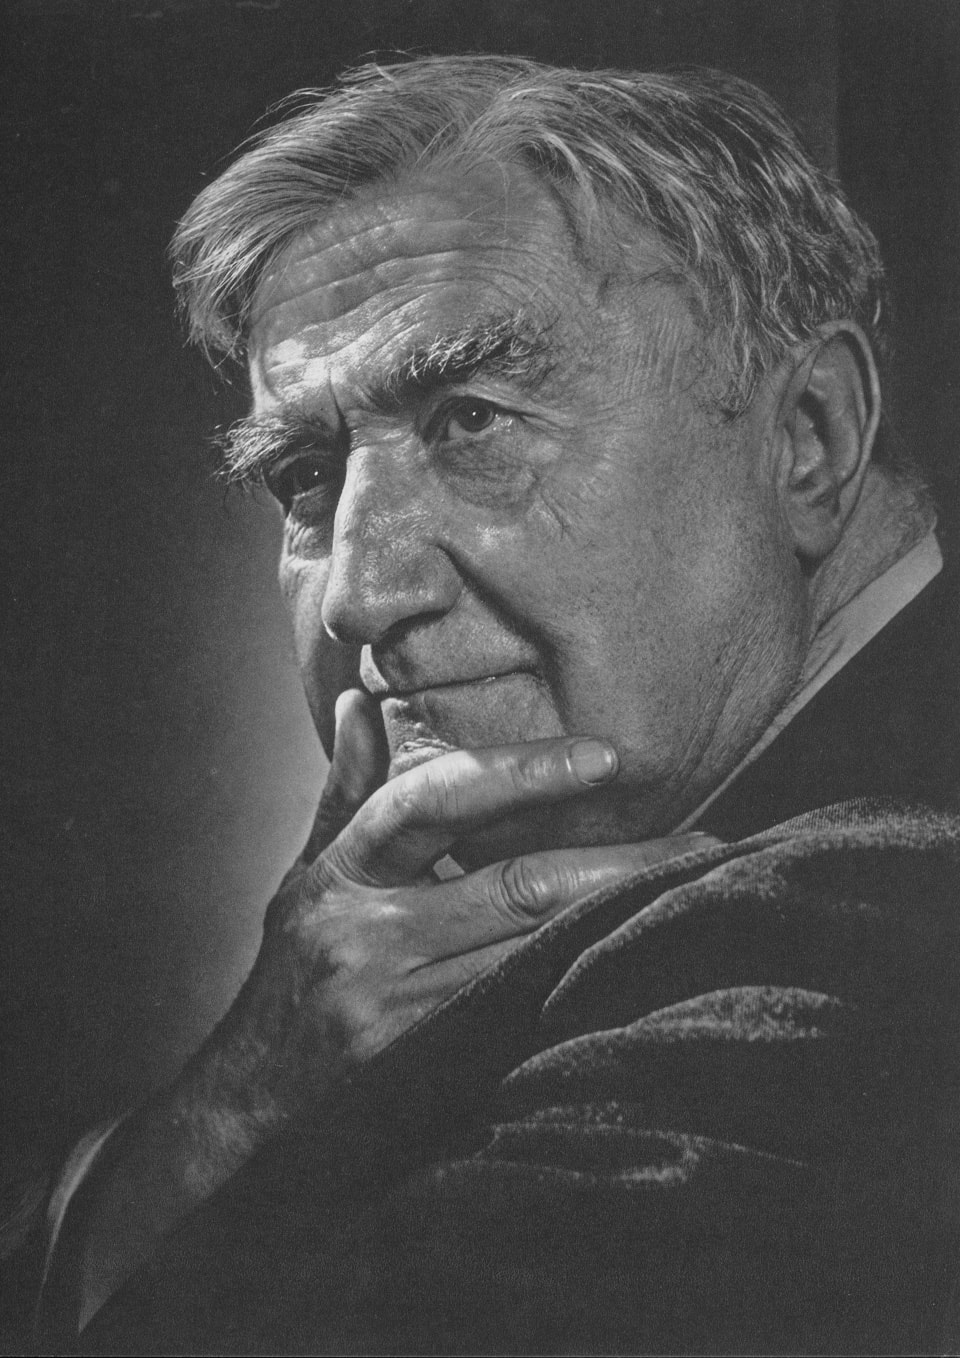 Ralph Vaughan Williams by Yousuf Karsh, 1949